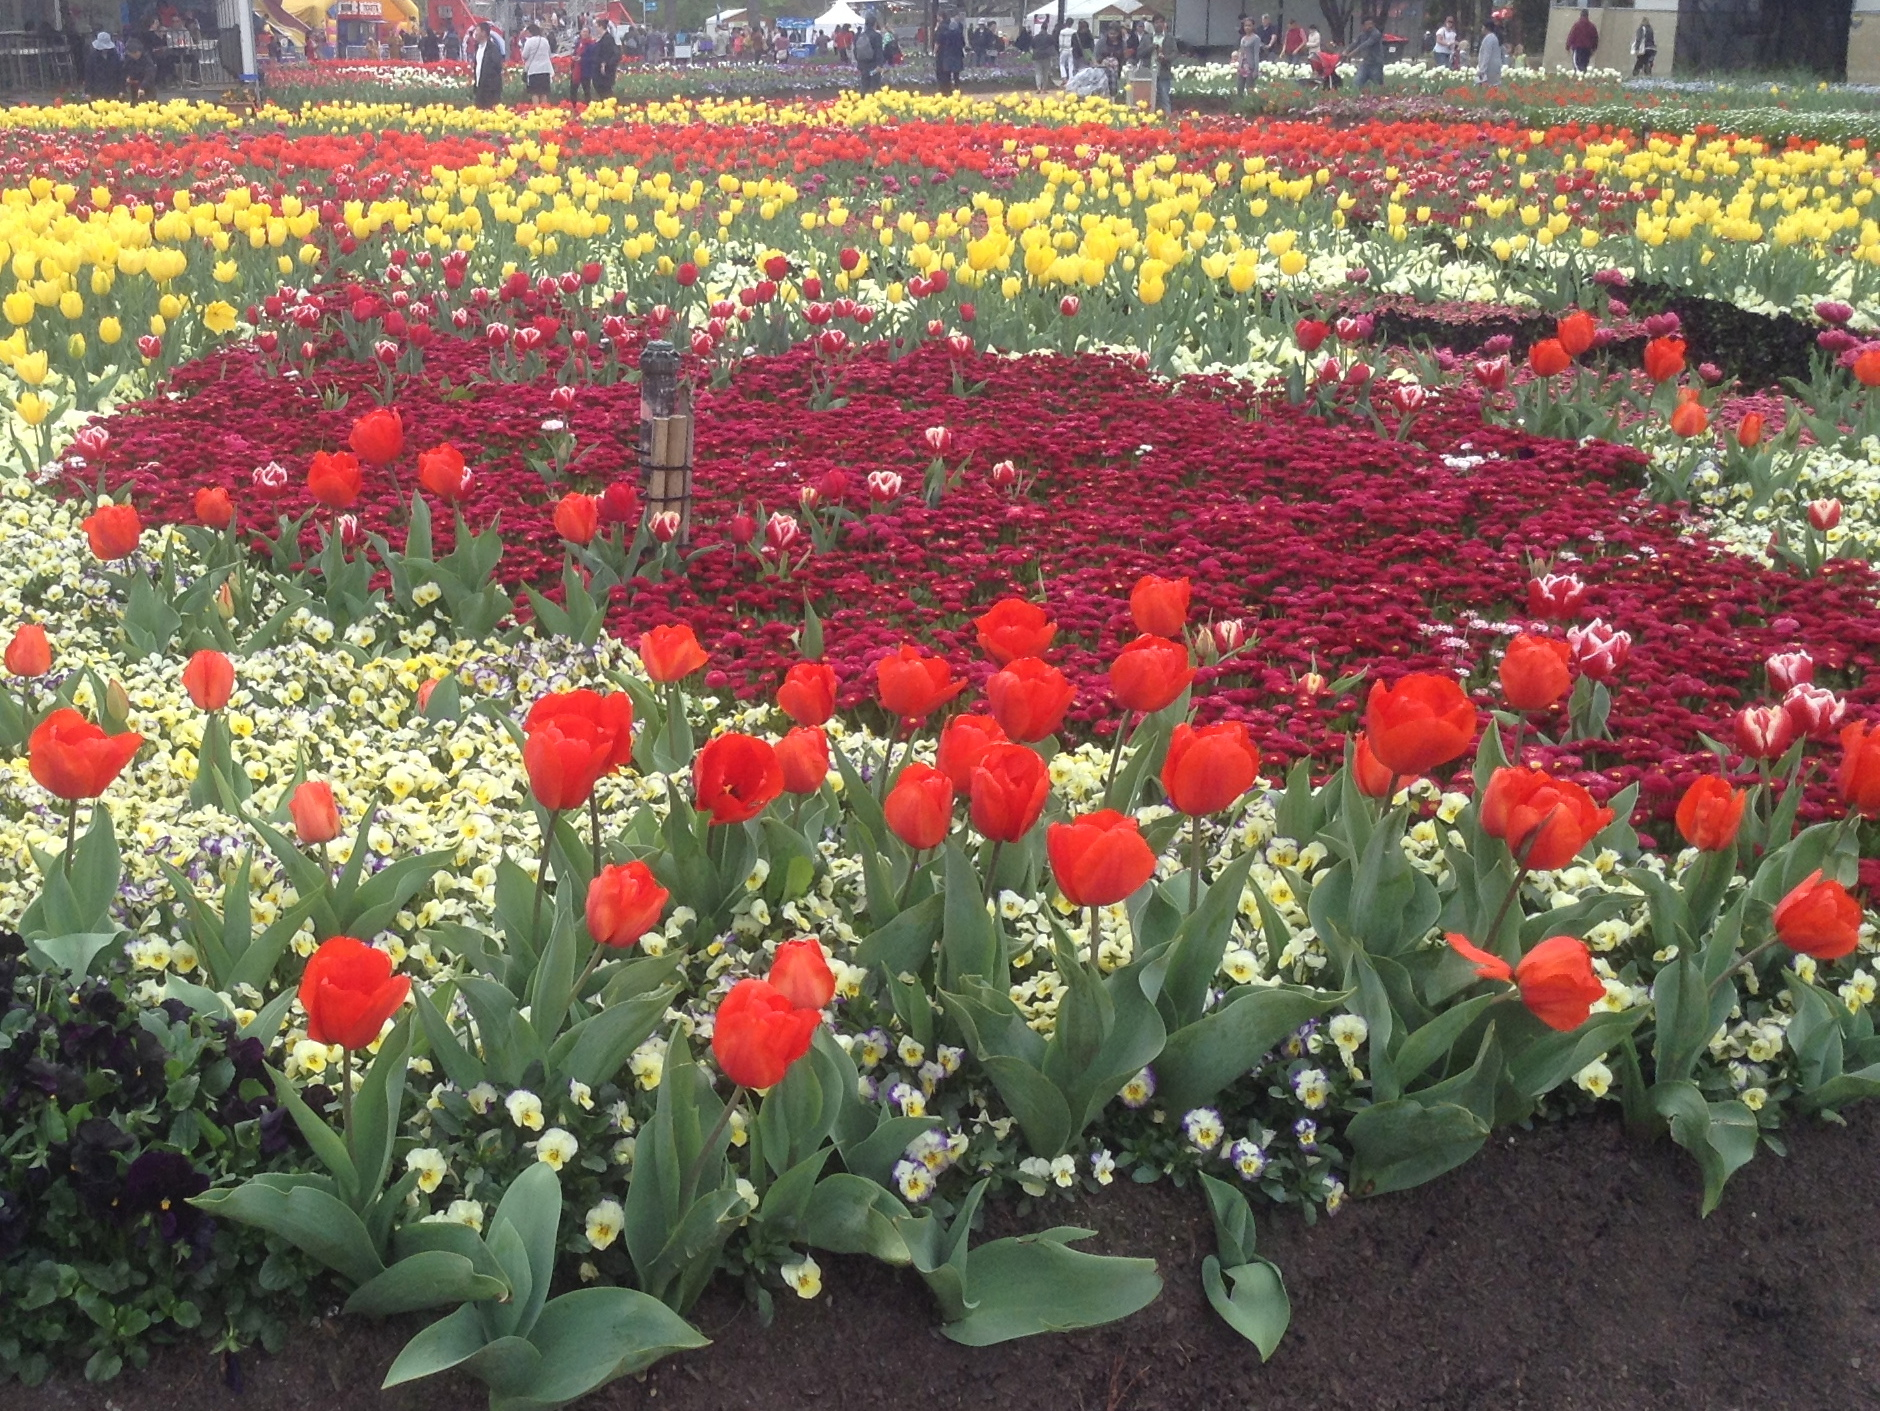 Different varieties of Tulips and annuals on display at the Canberra Floriade. By Trisha Haddock